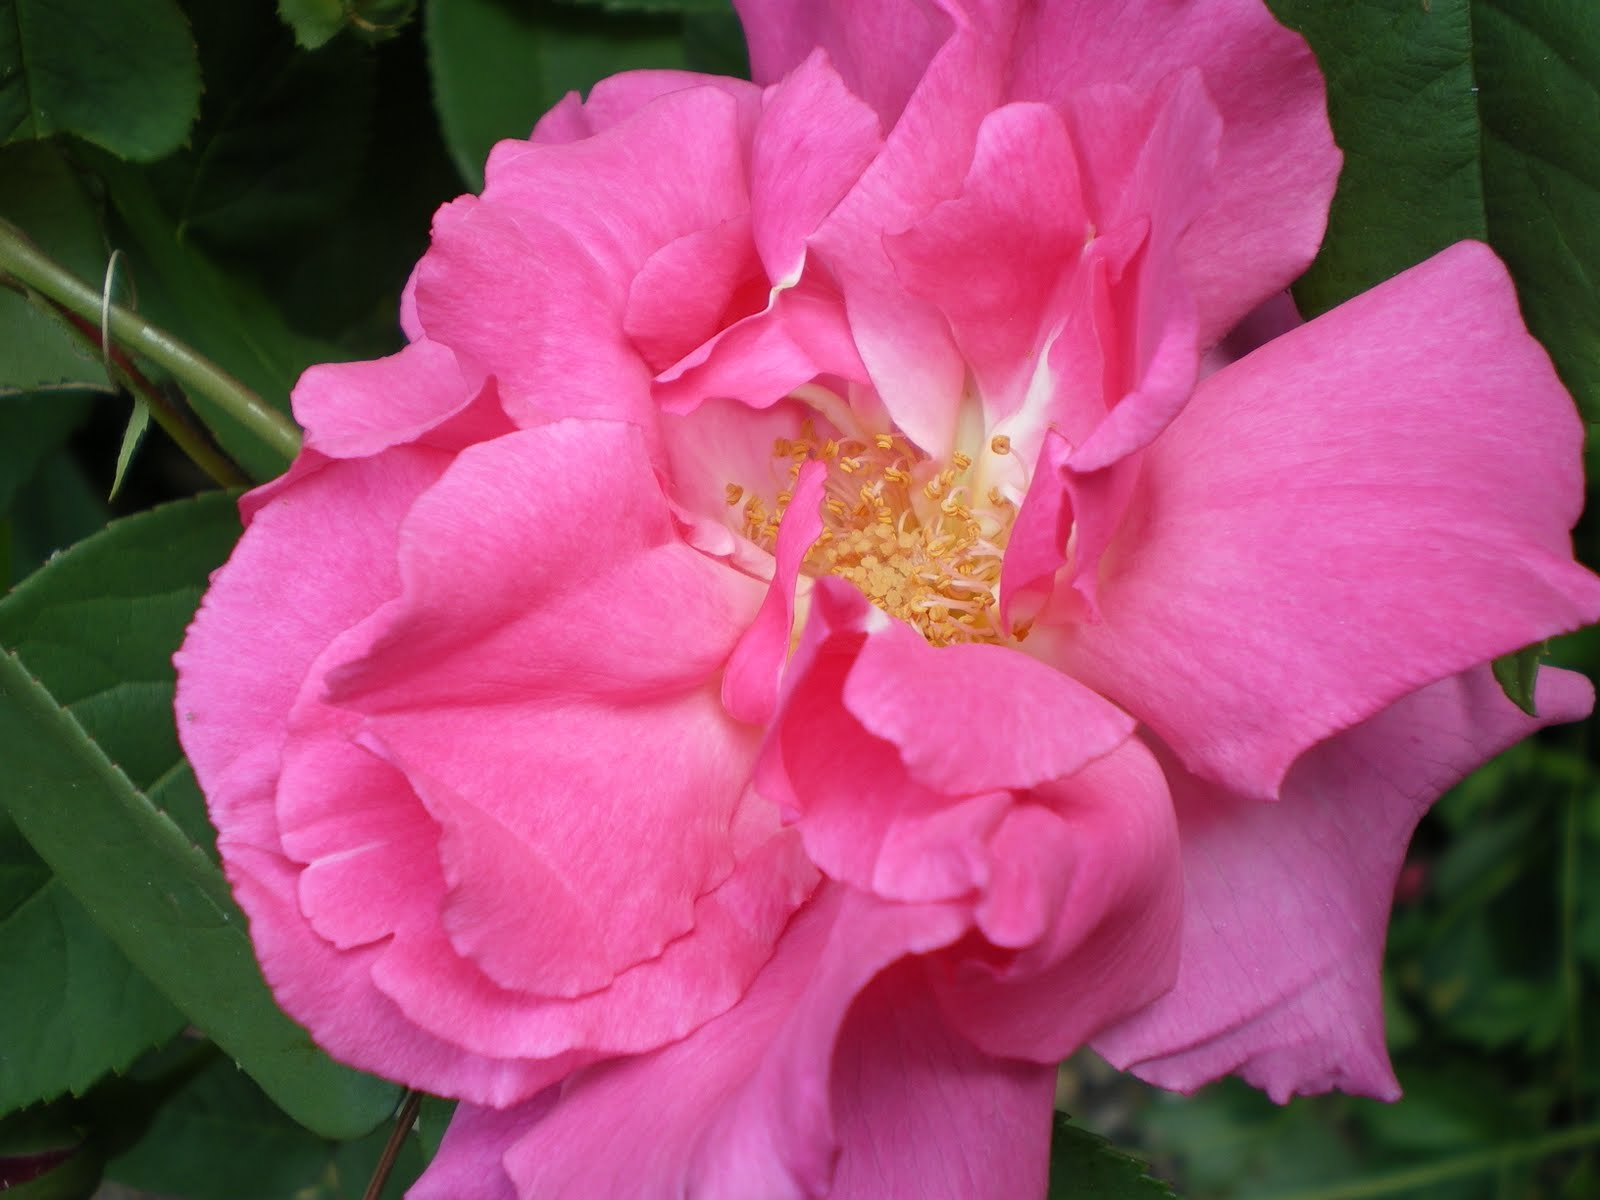 Love Garden Roses: The Shabby Chic Bohemian: It's Rose Season